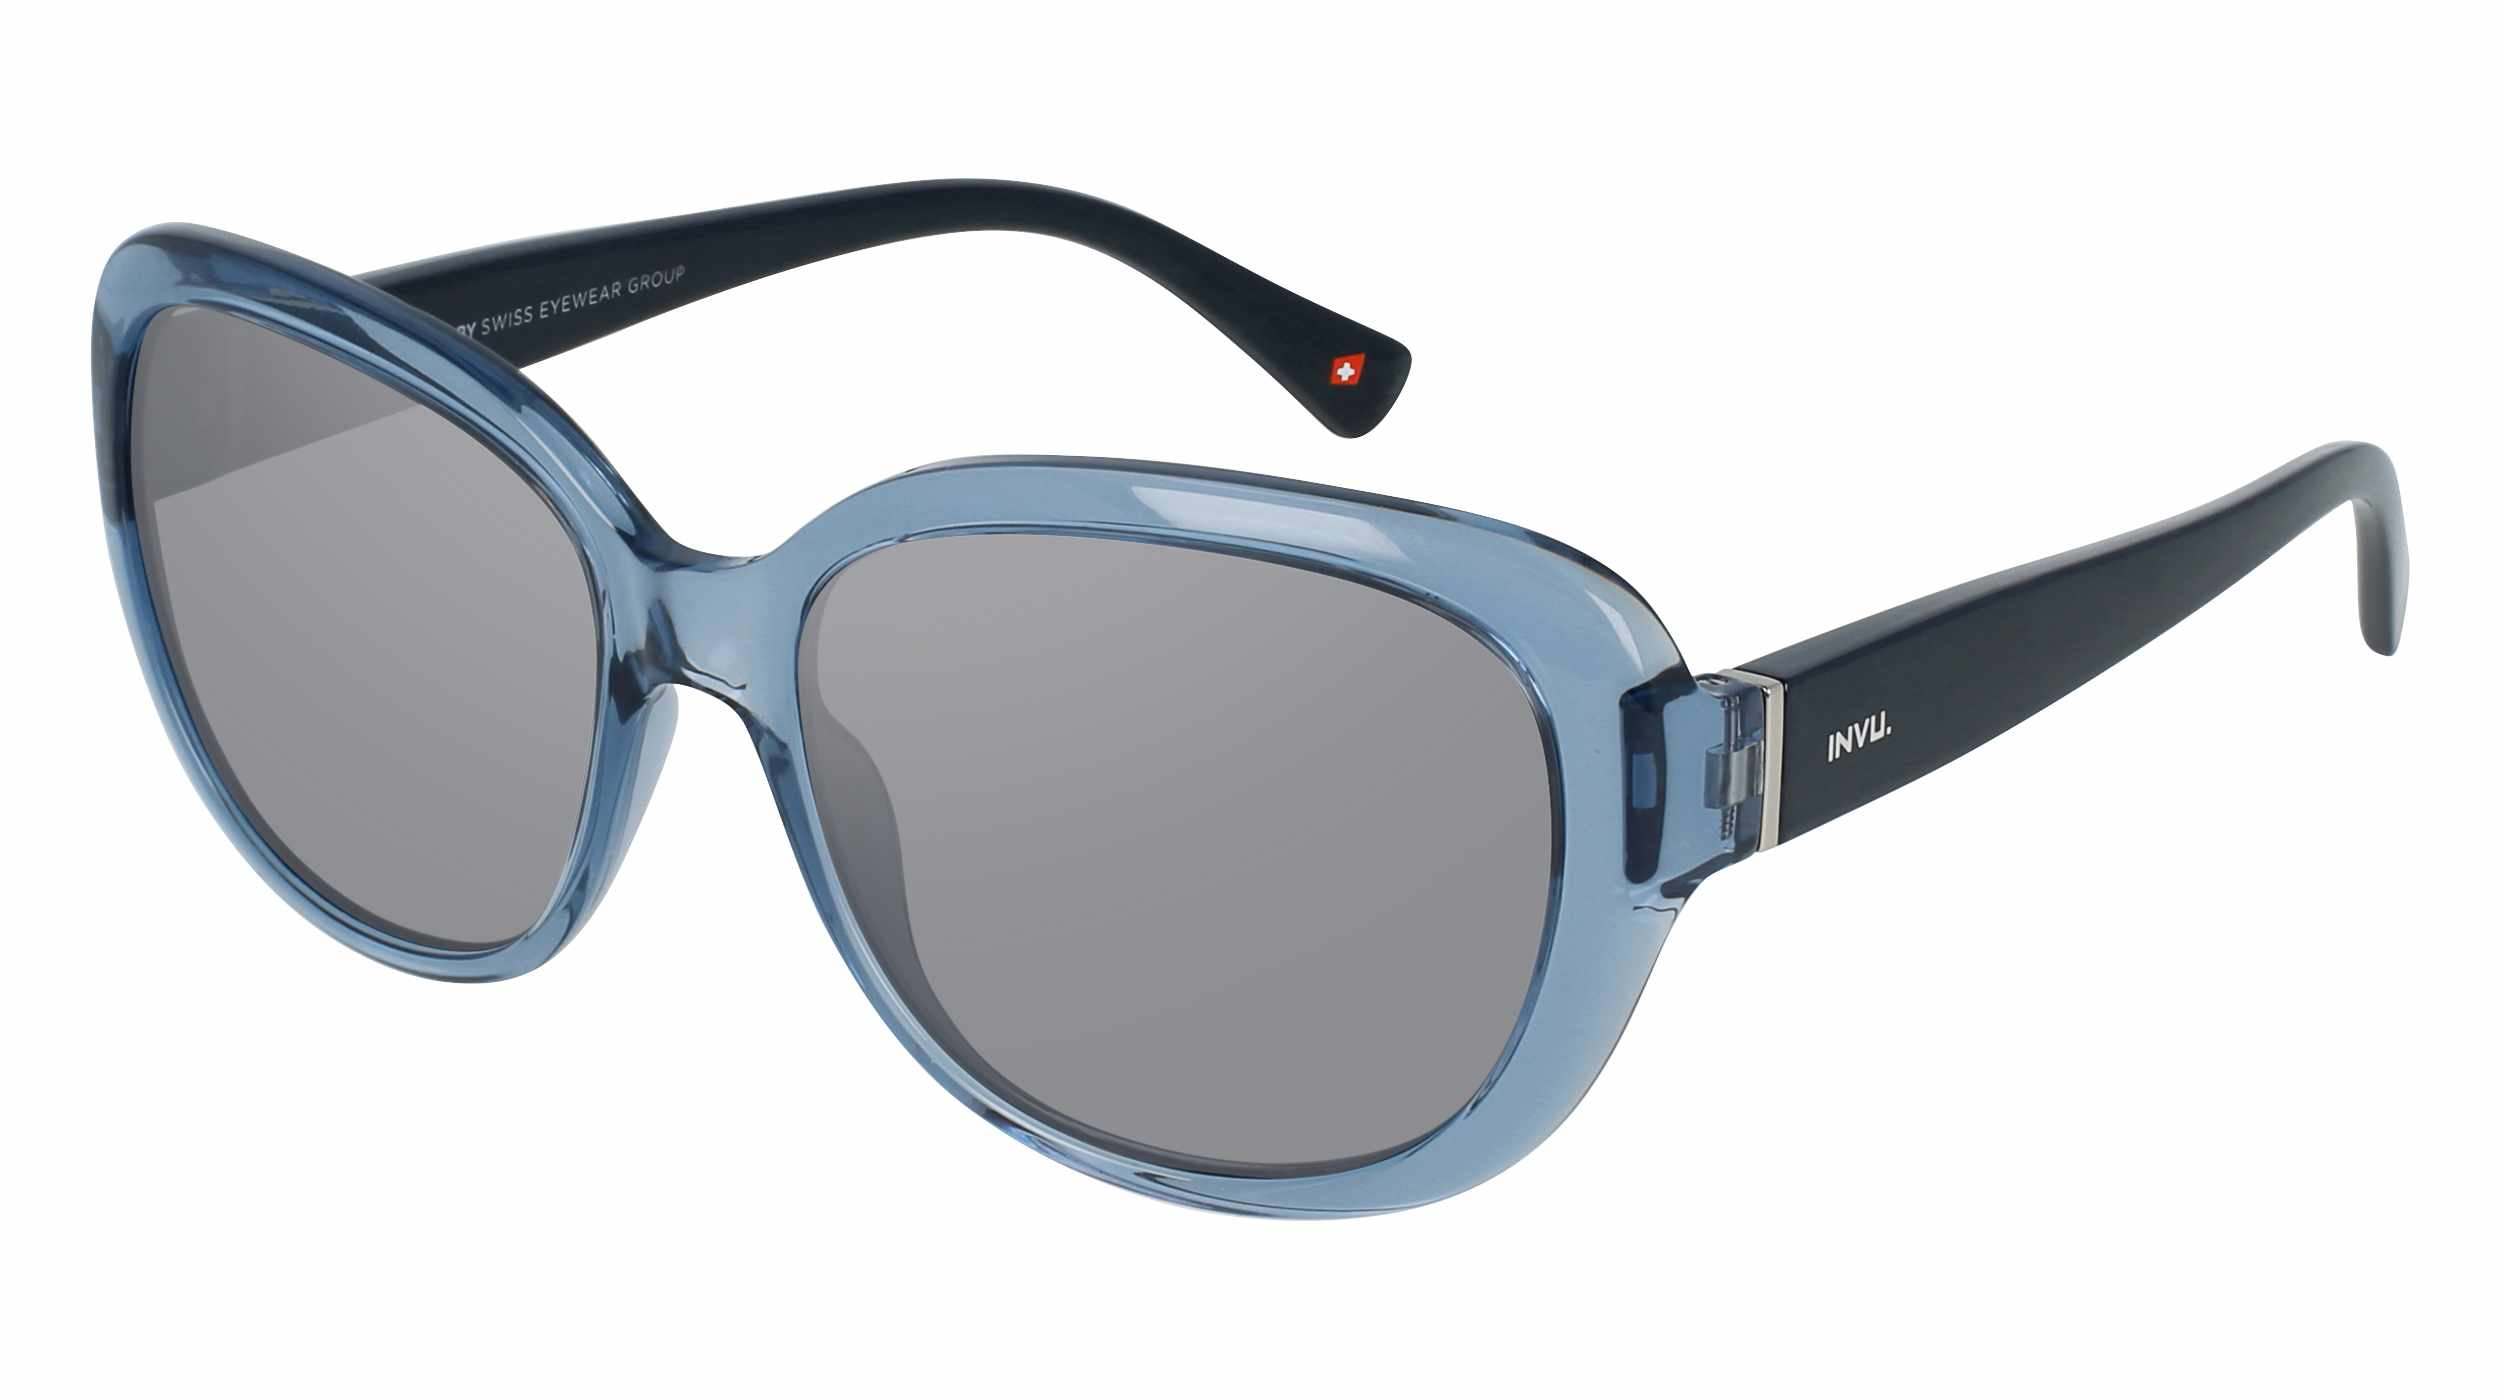 5th Avenue Celeste Blu Navy Grigio